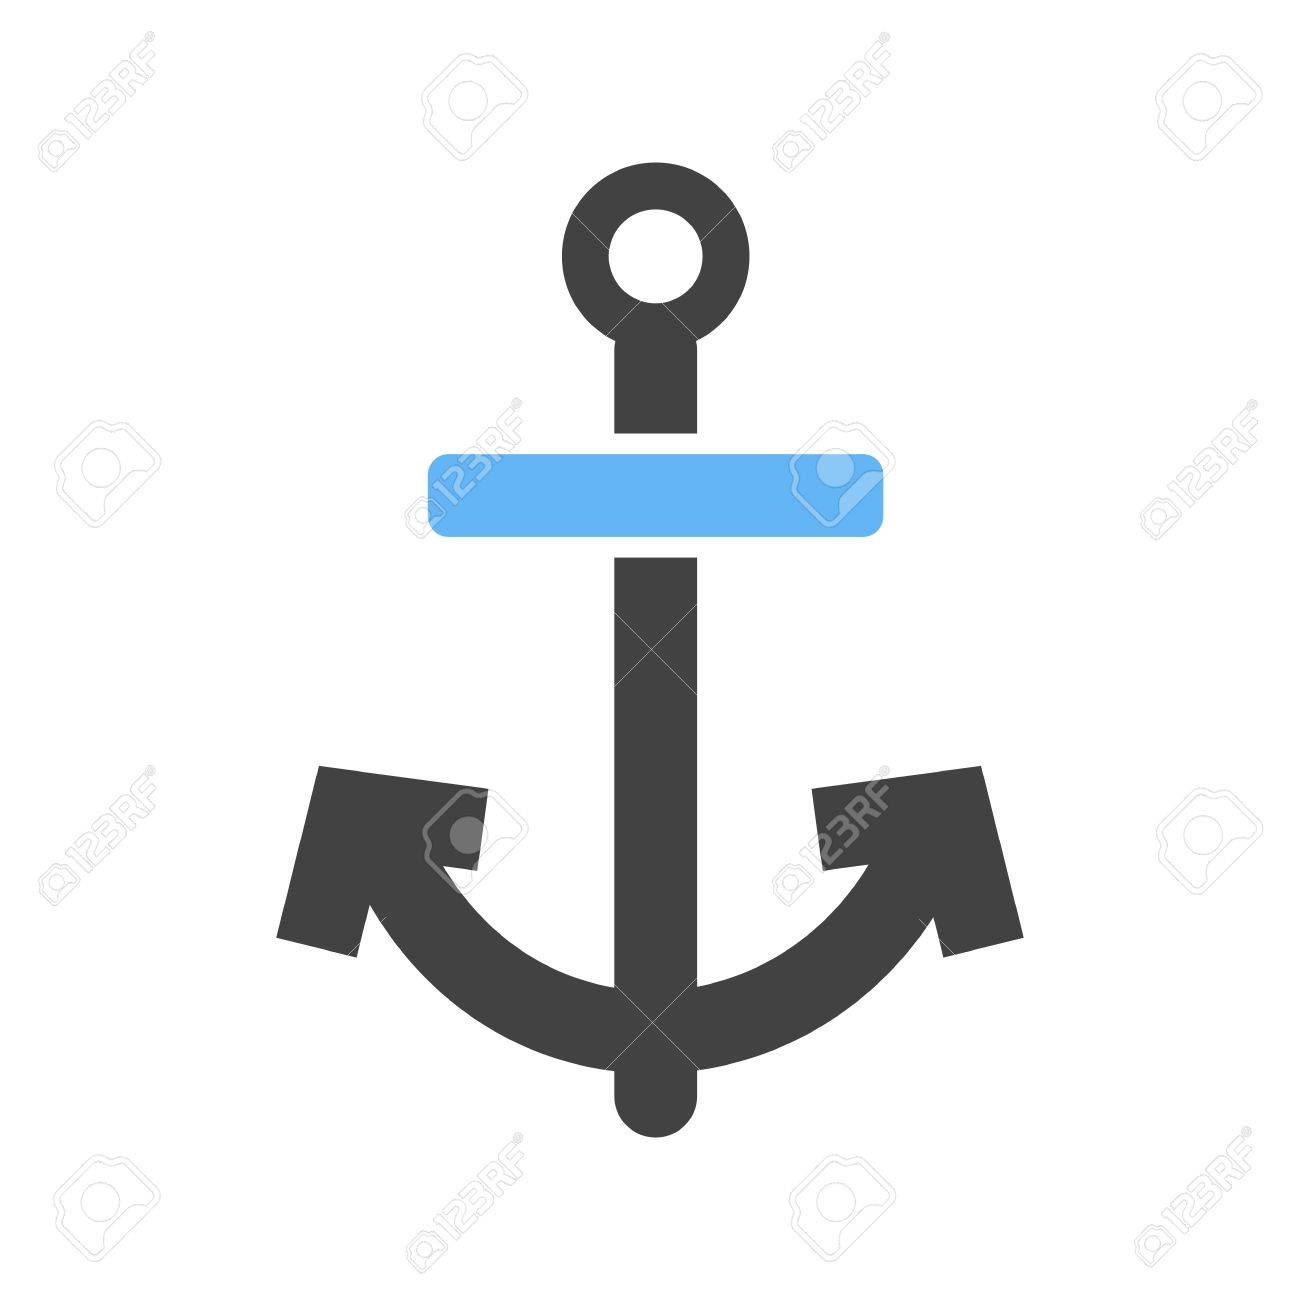 1300x1300 Anchor, Ship, Boat Icon Vector Image. Can Also Be Used For Summer